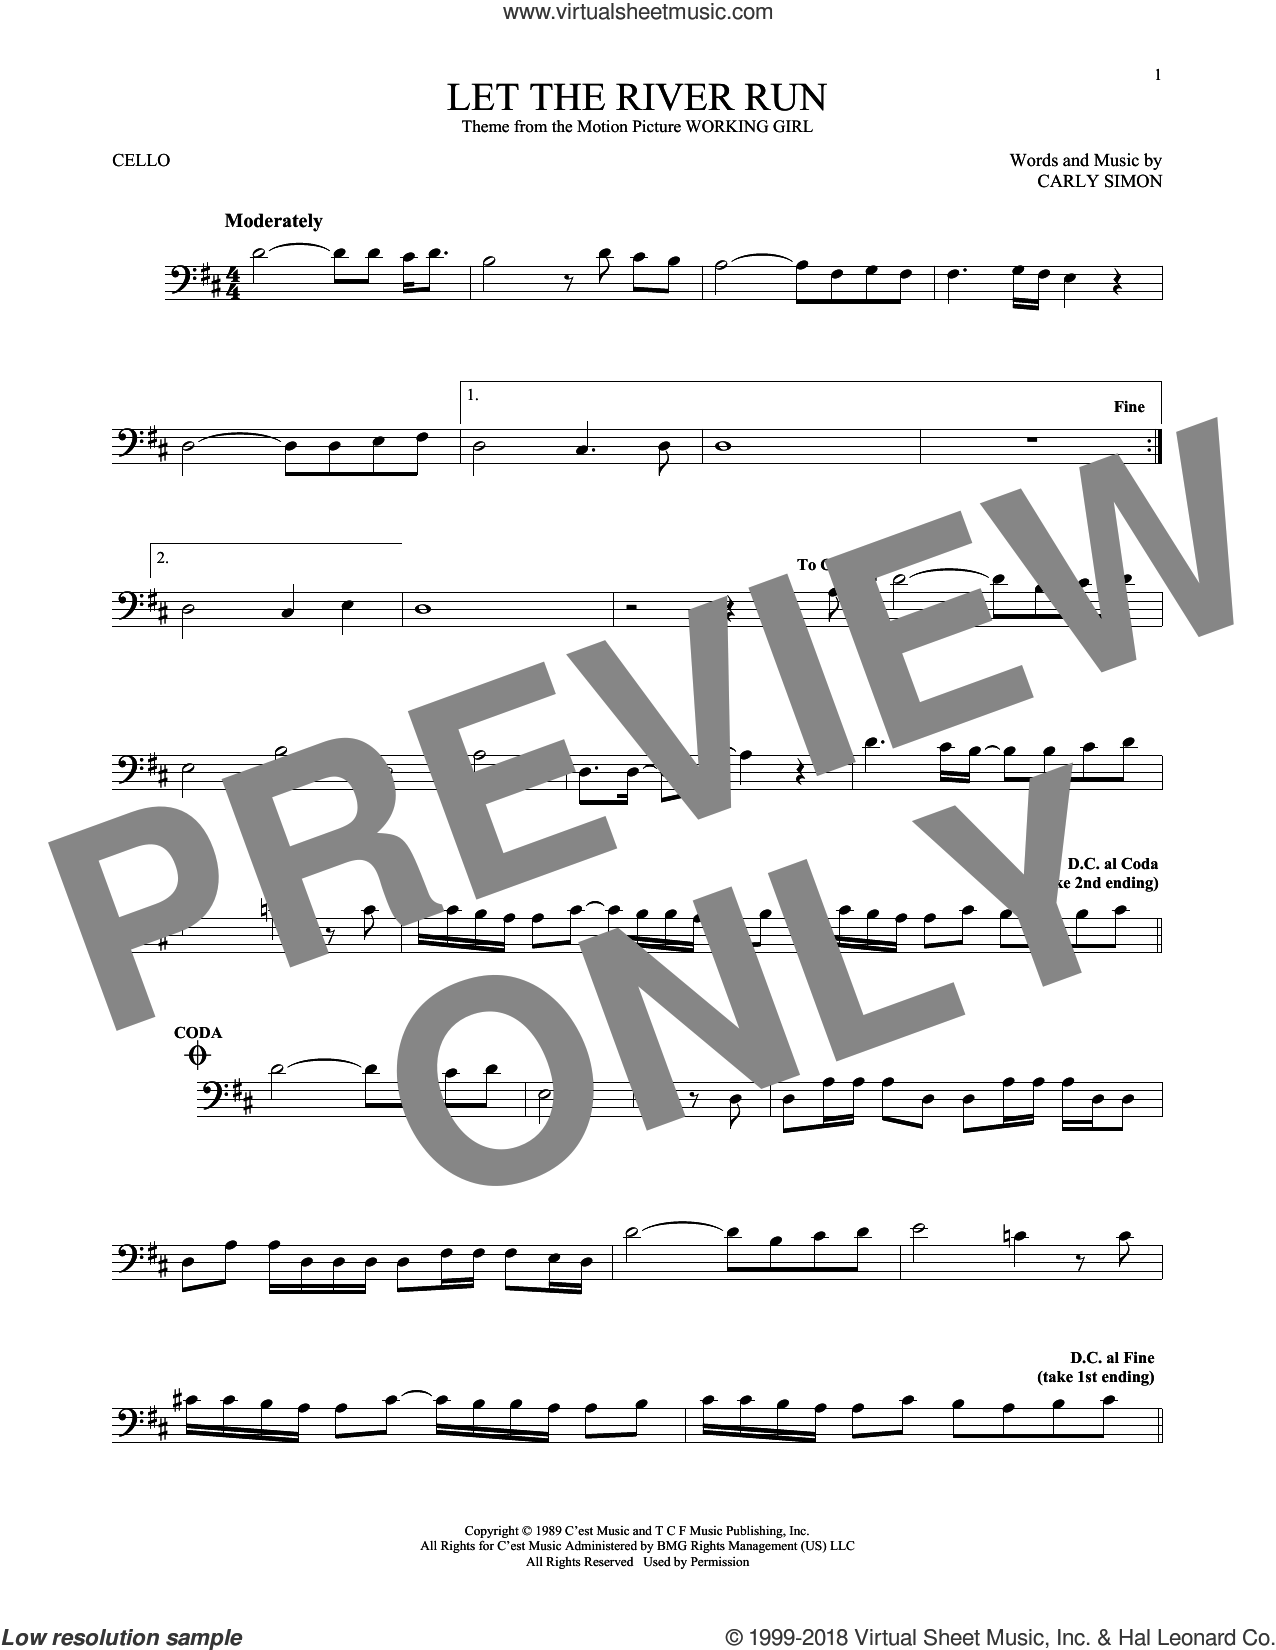 Let The River Run sheet music for cello solo by Carly Simon, intermediate skill level